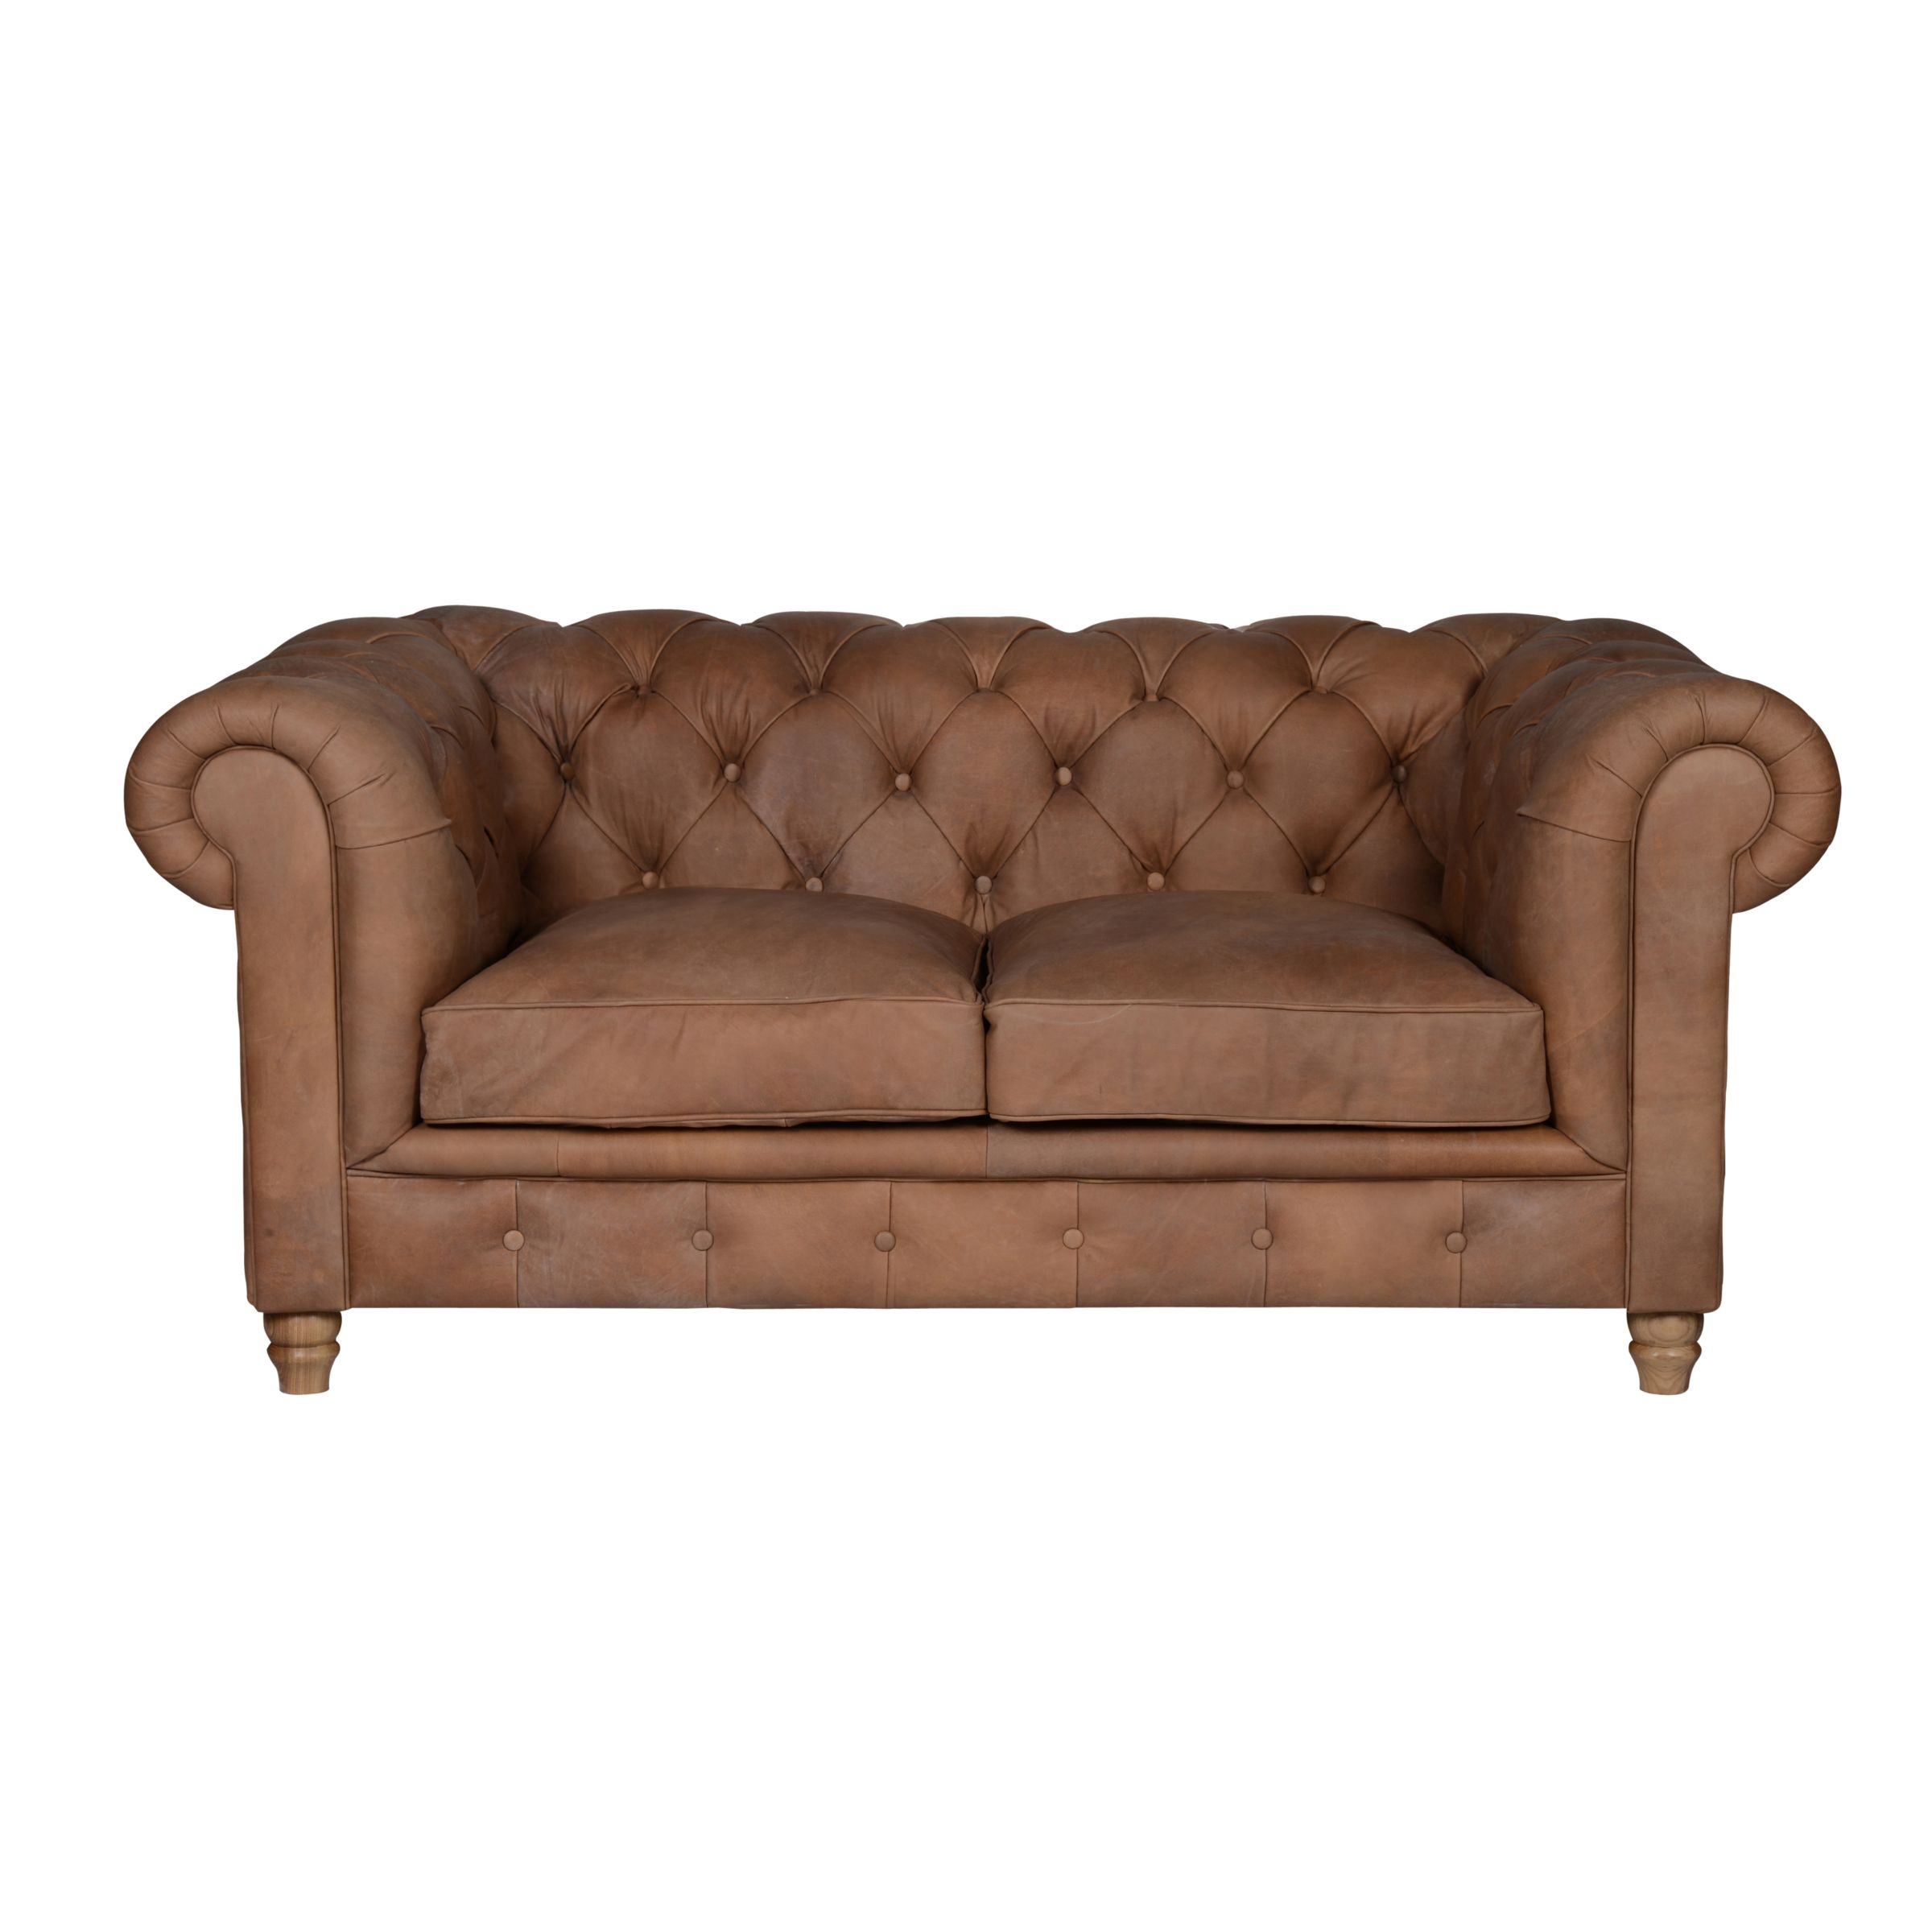 Halo Halo Earle Medium Chesterfield Leather Sofa, Destroyed Raw